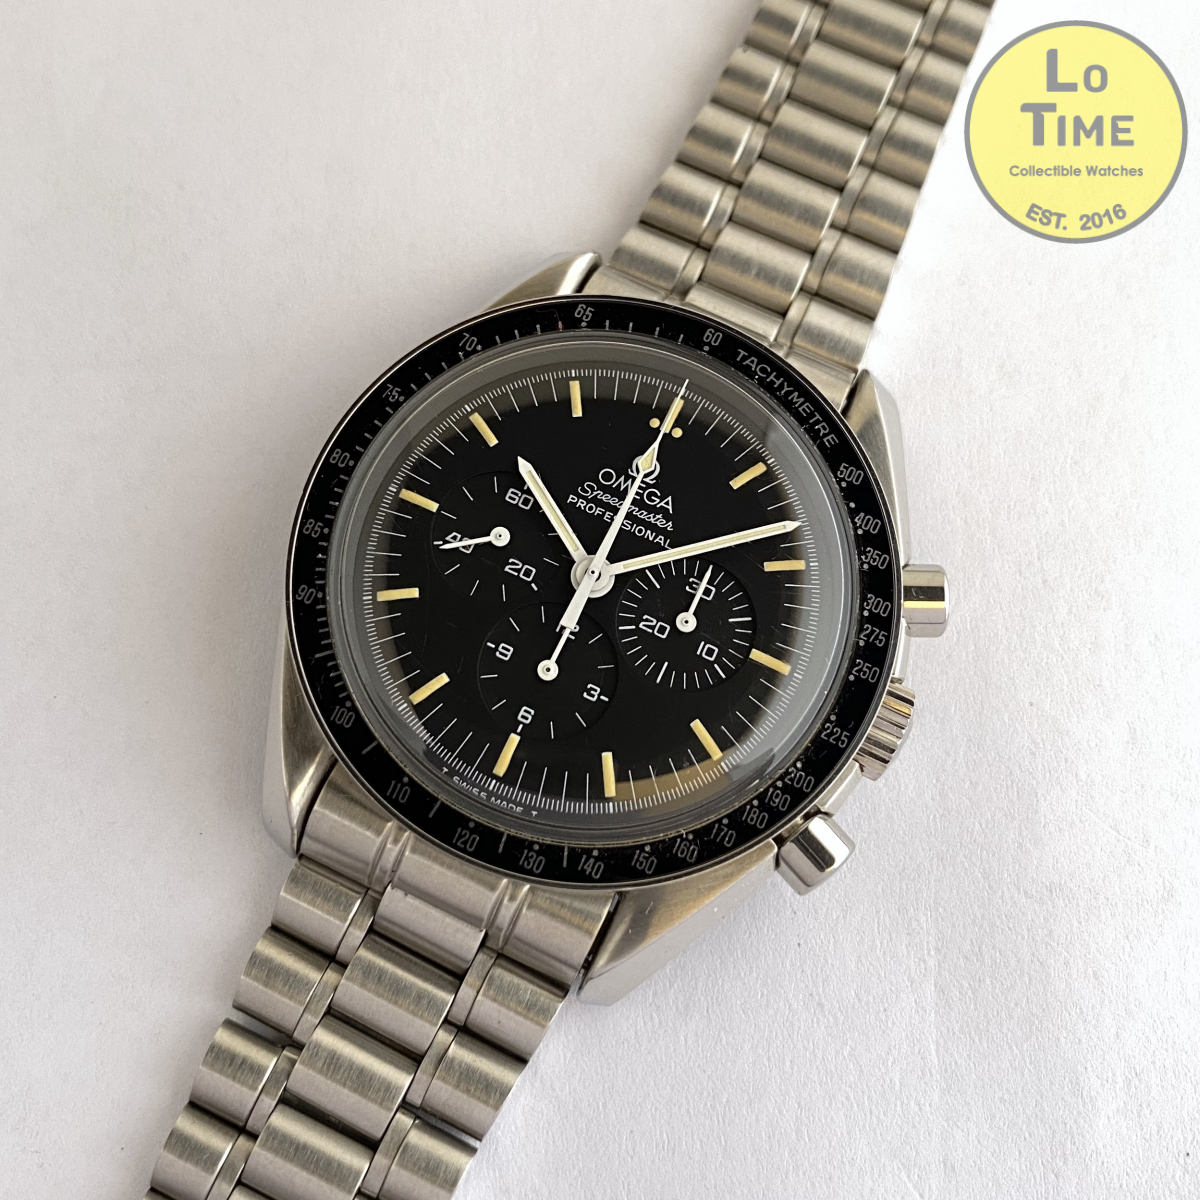 Omega Speedmaster Professional 145.022 B/P Full set